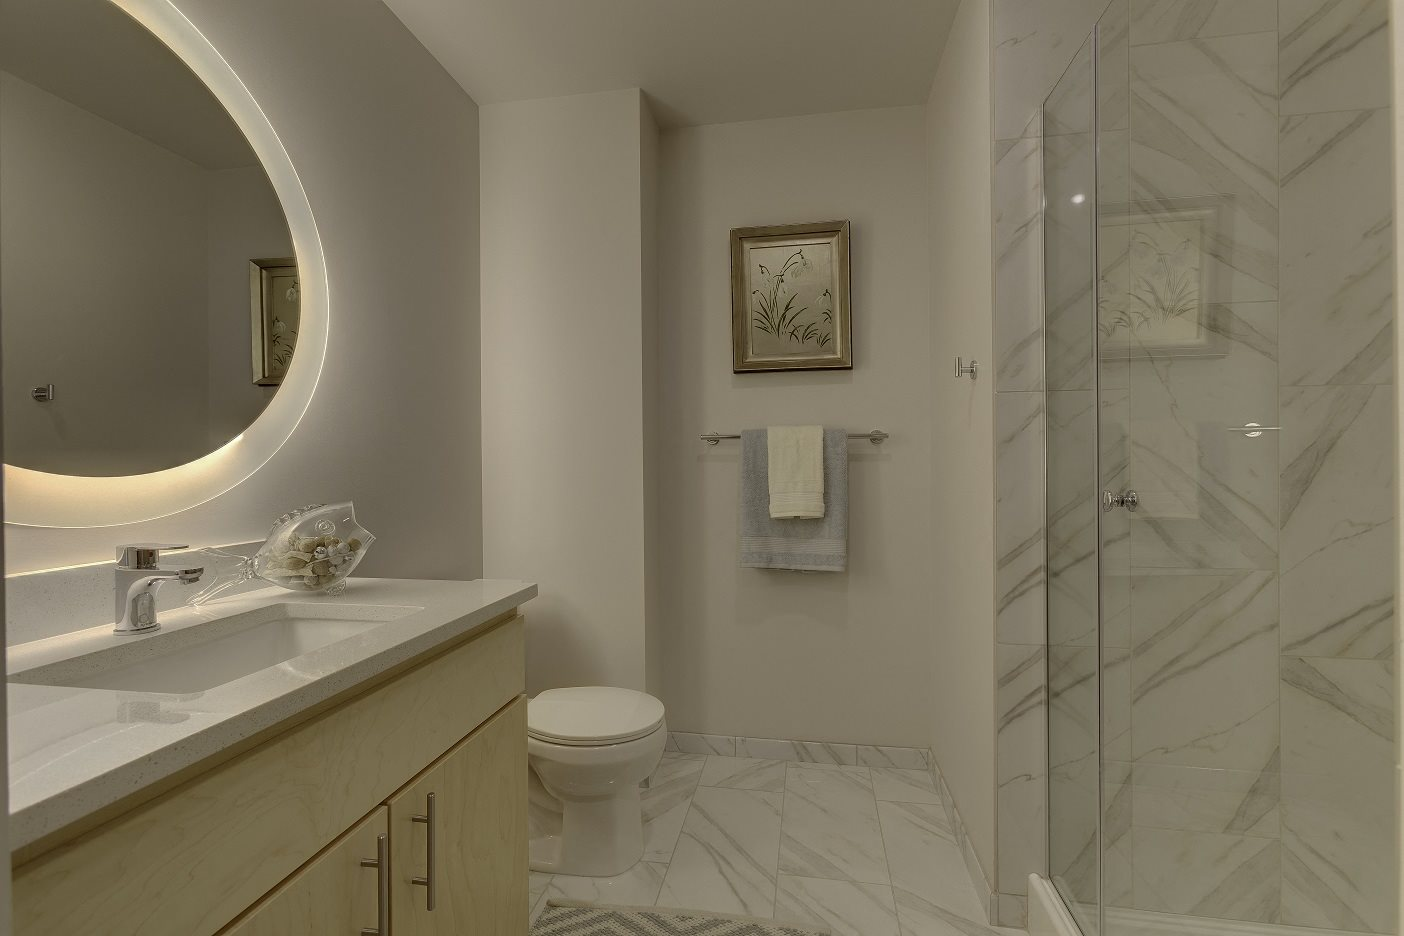 The Mercer_Mercer Island WA_Apartment Master Bathroom Vanity